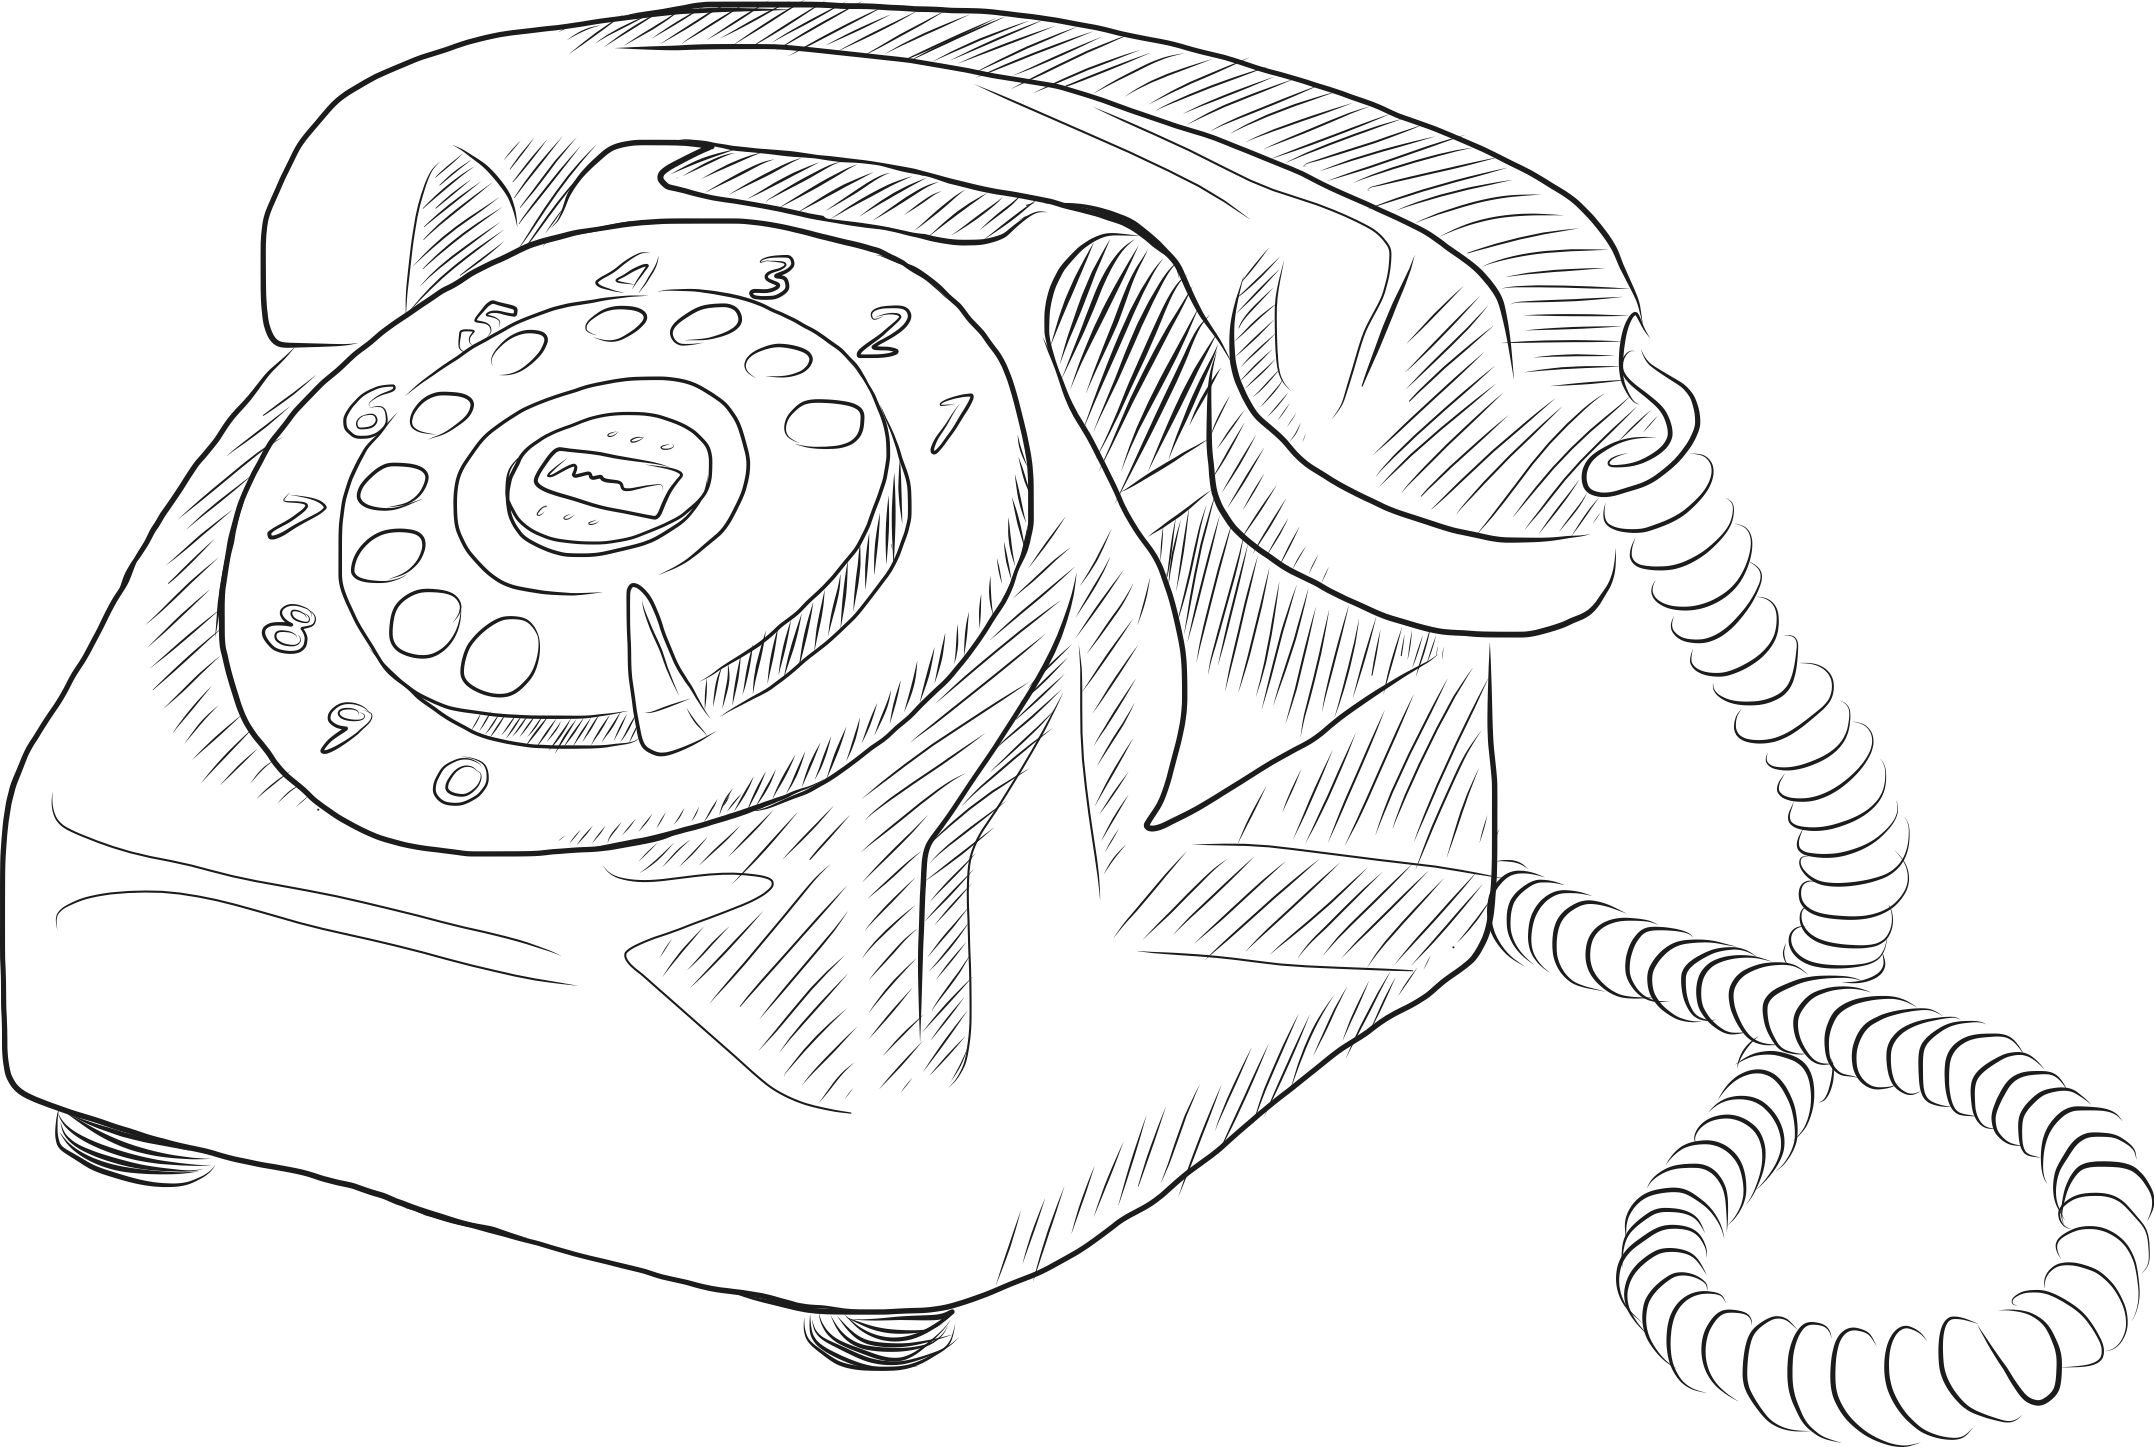 old phone.png